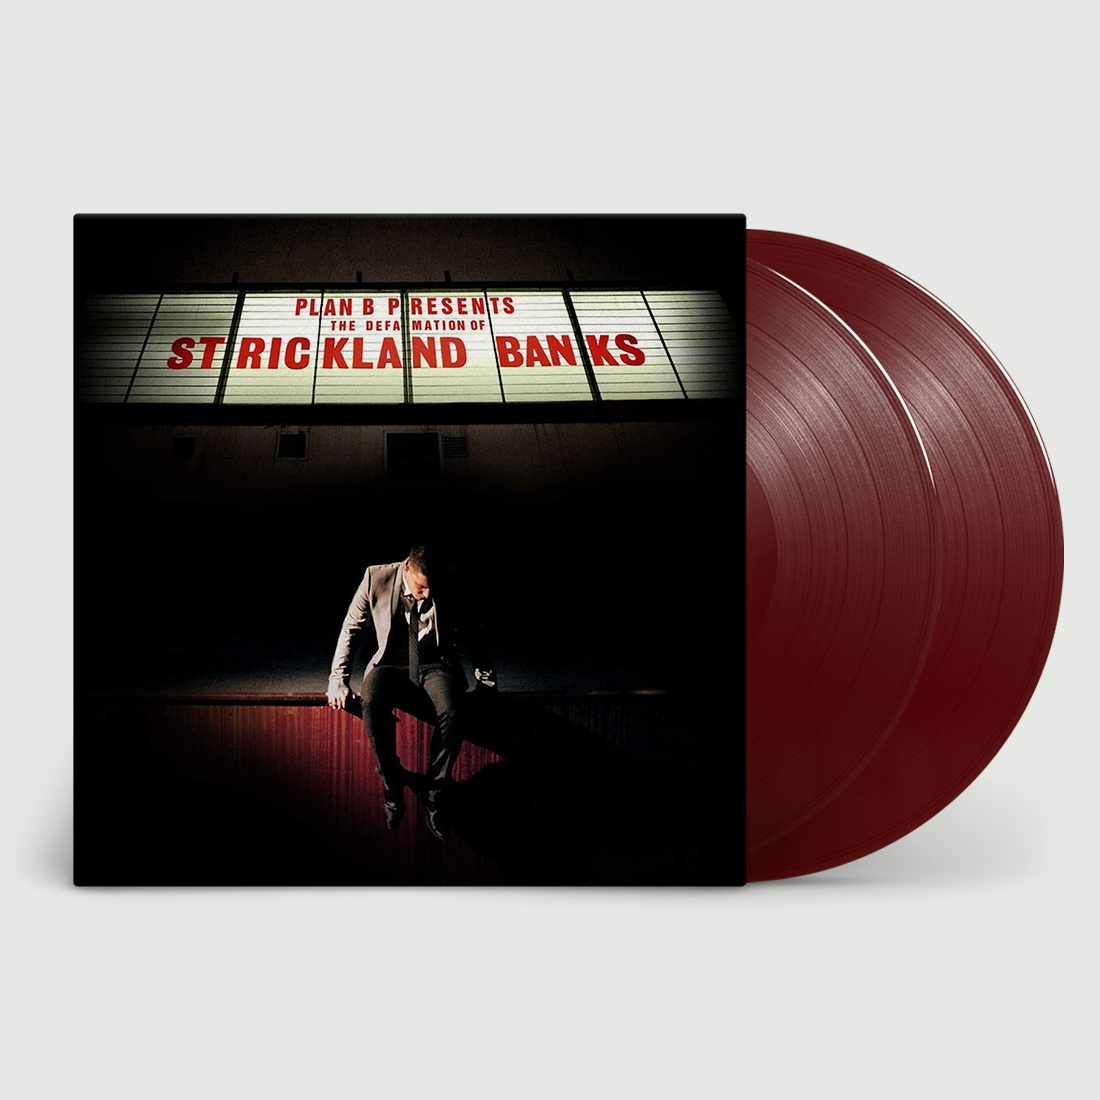 Plan B - The Defamation Of Strickland Banks - National Album Day (10th Anniversary)